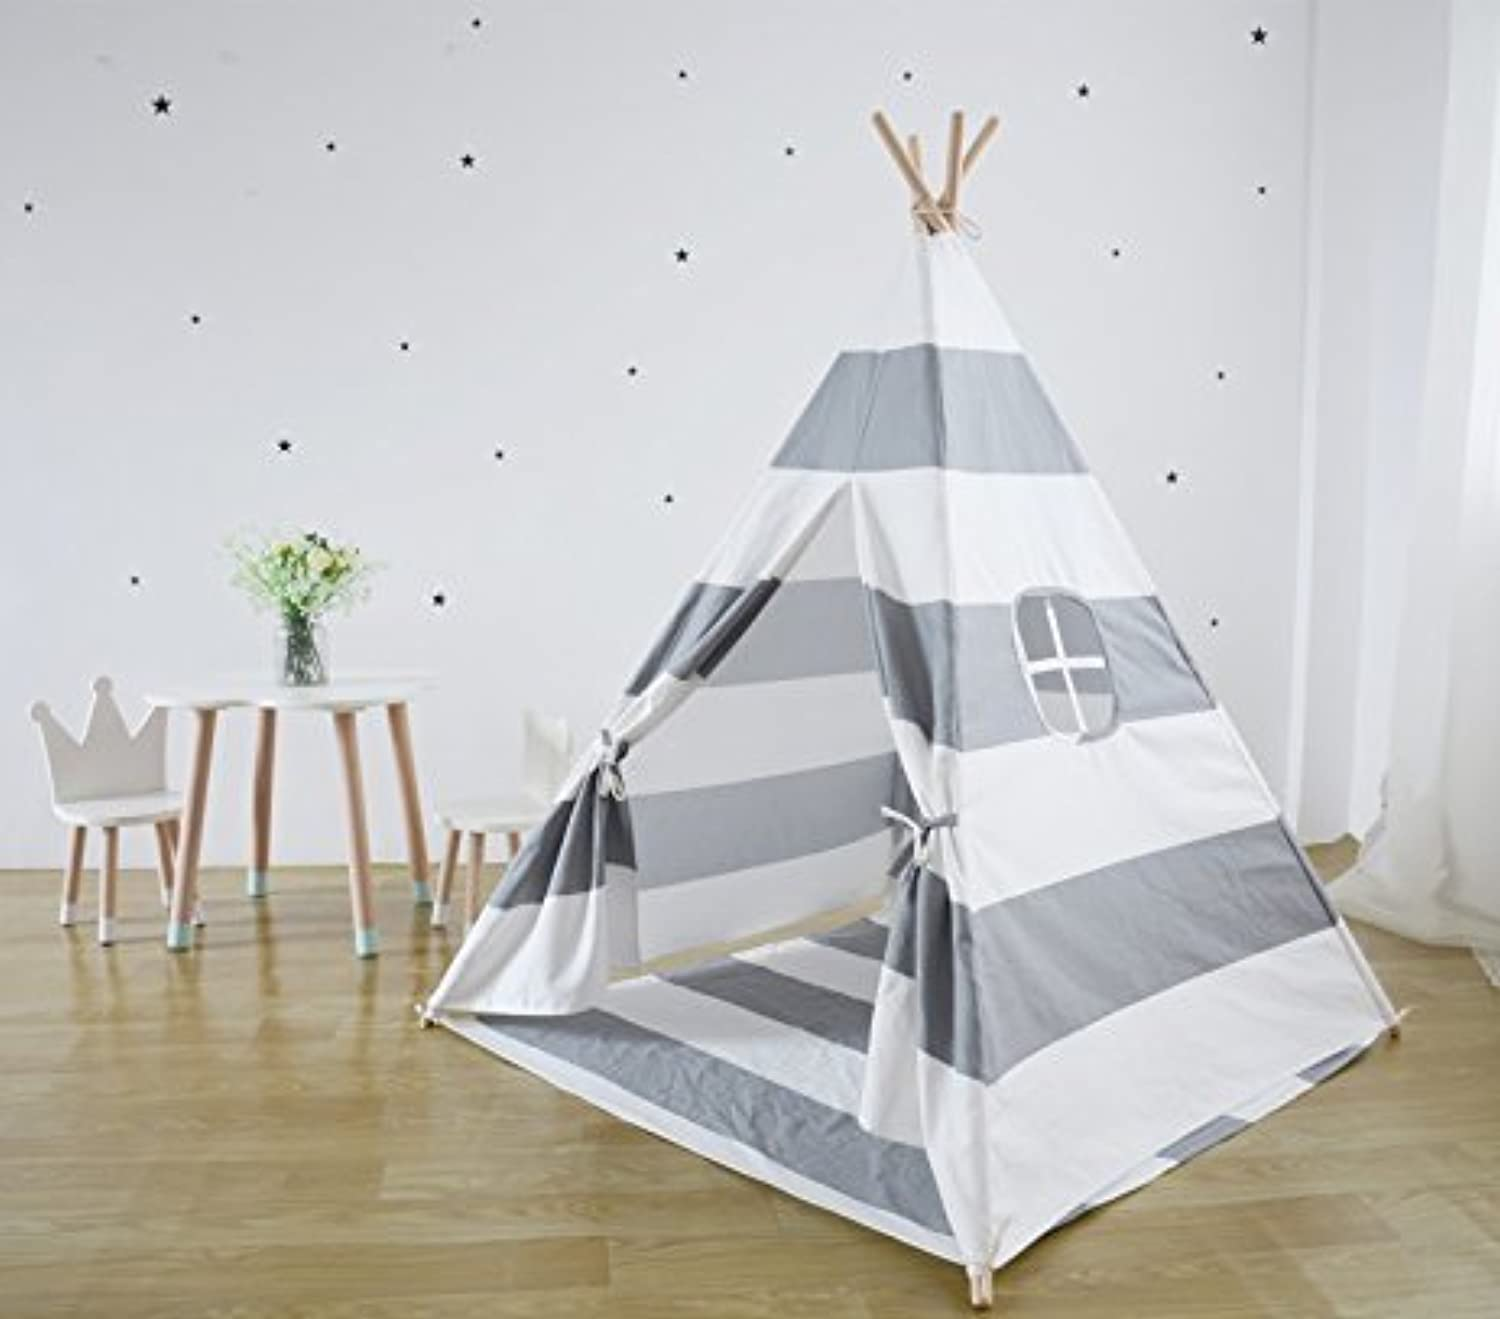 Miyaya 6' Indoor Indian Playhouse Toy Teepee Play Tent for Kids Toddlers Canvas Teepee with Carry Case with Mat (Grey Stripe)